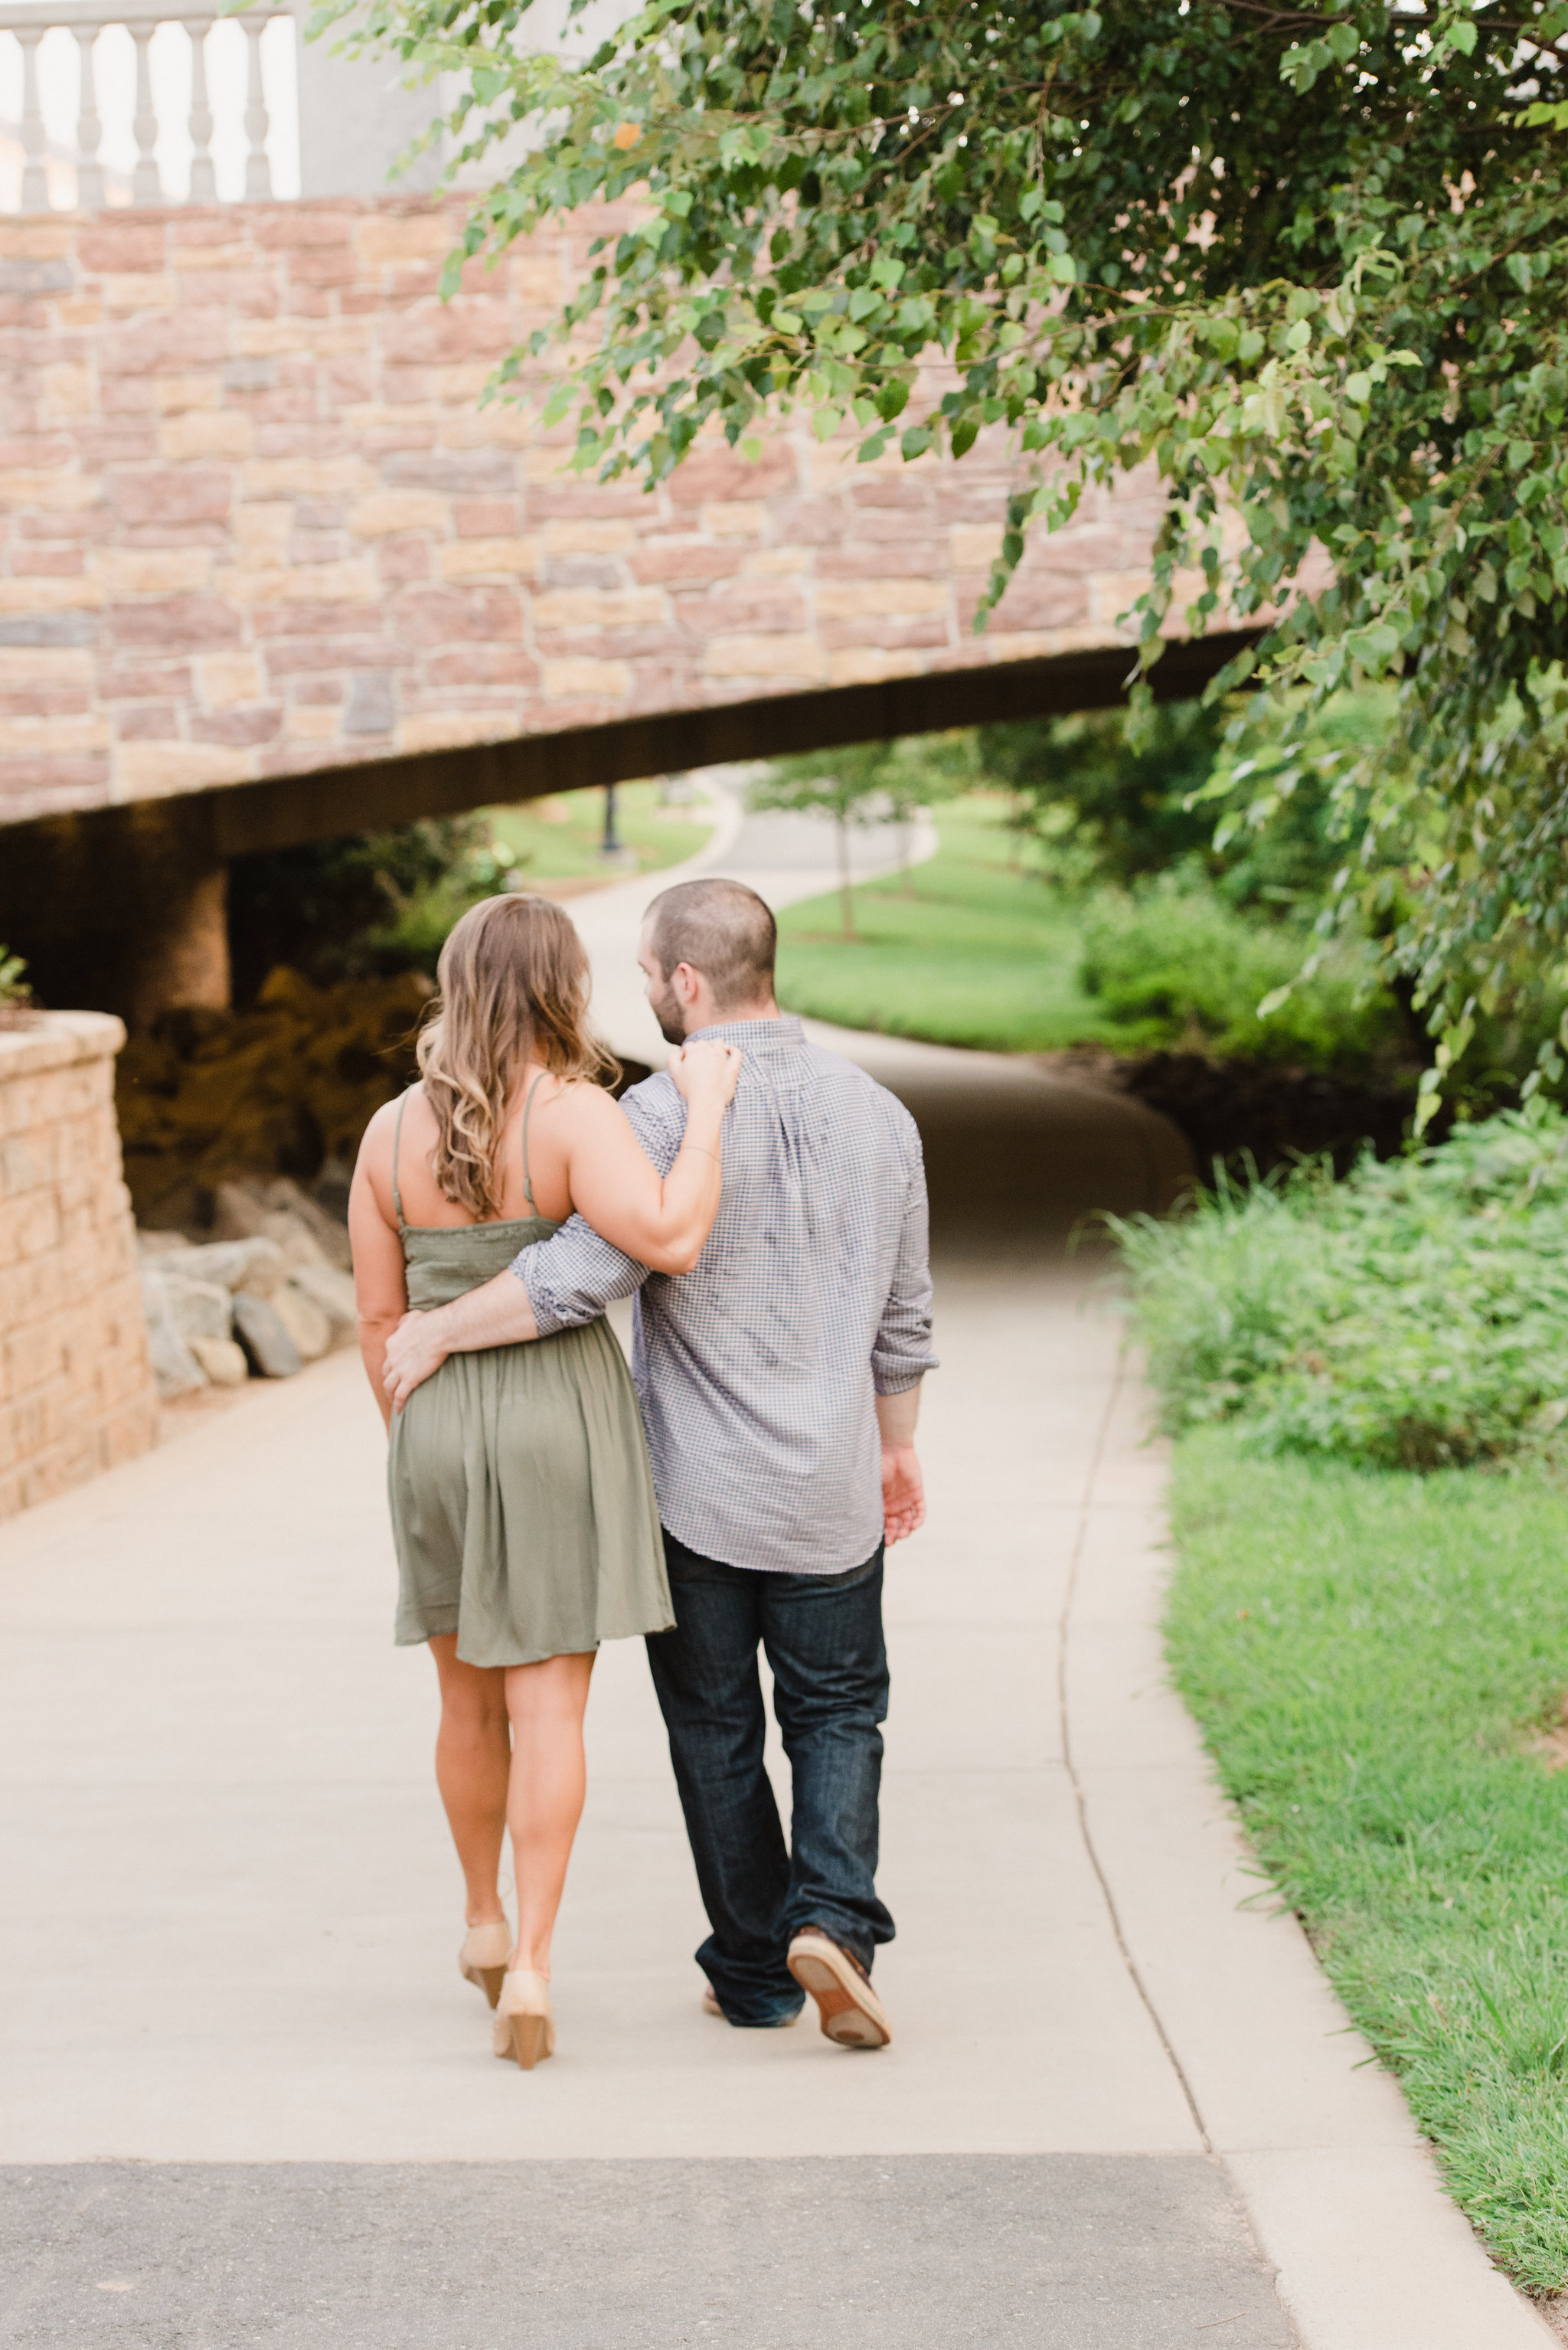 uptown-charlotte-engagement-session-74.jpg